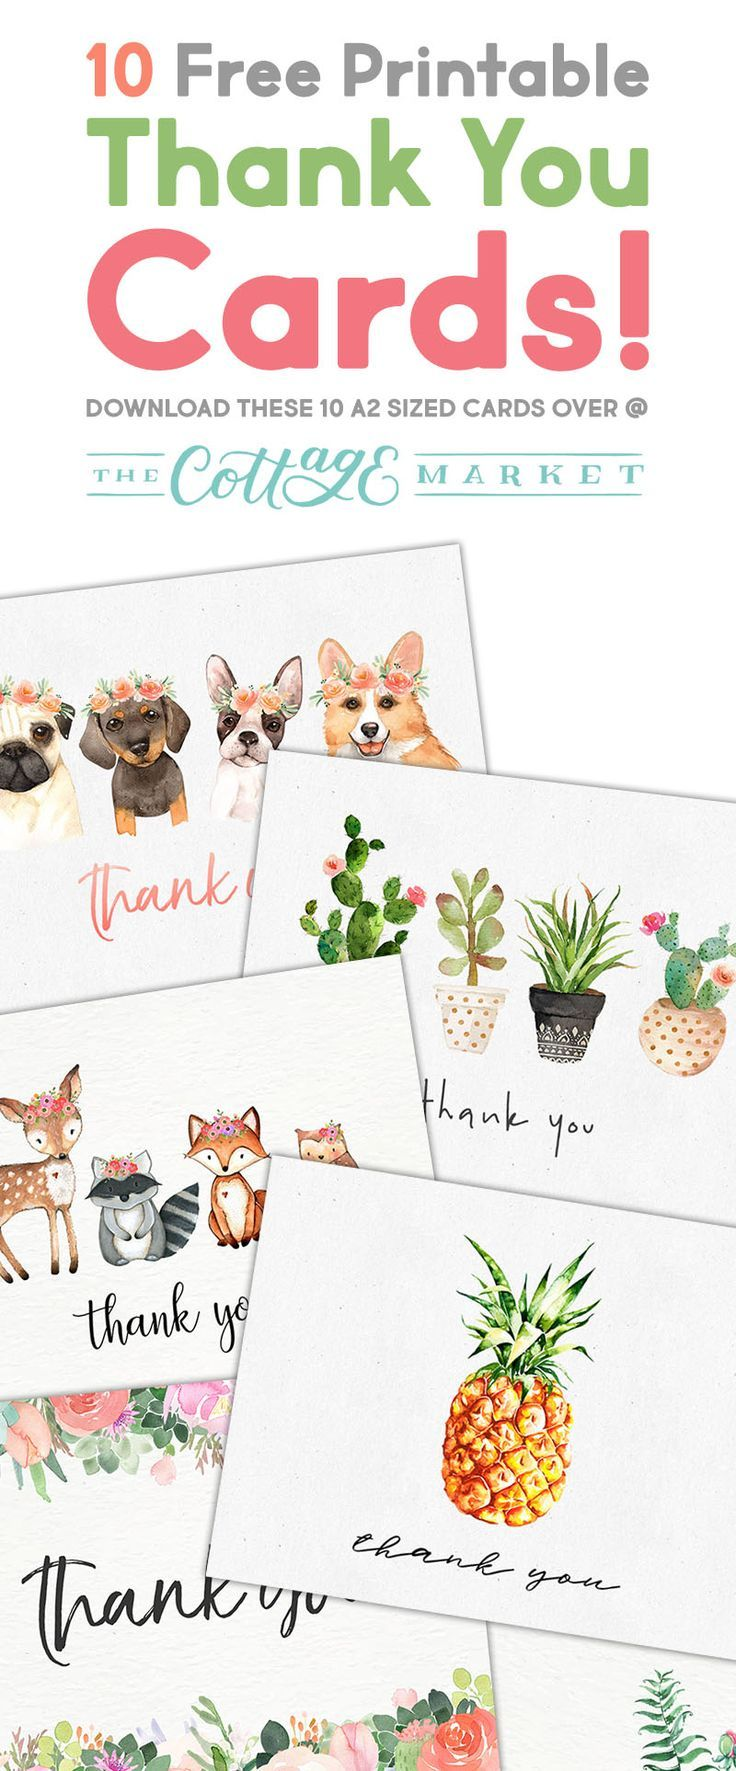 10 Free Printable Thank You Cards You Cant Miss You will have a Thank you Card at your finger tips any time you need it